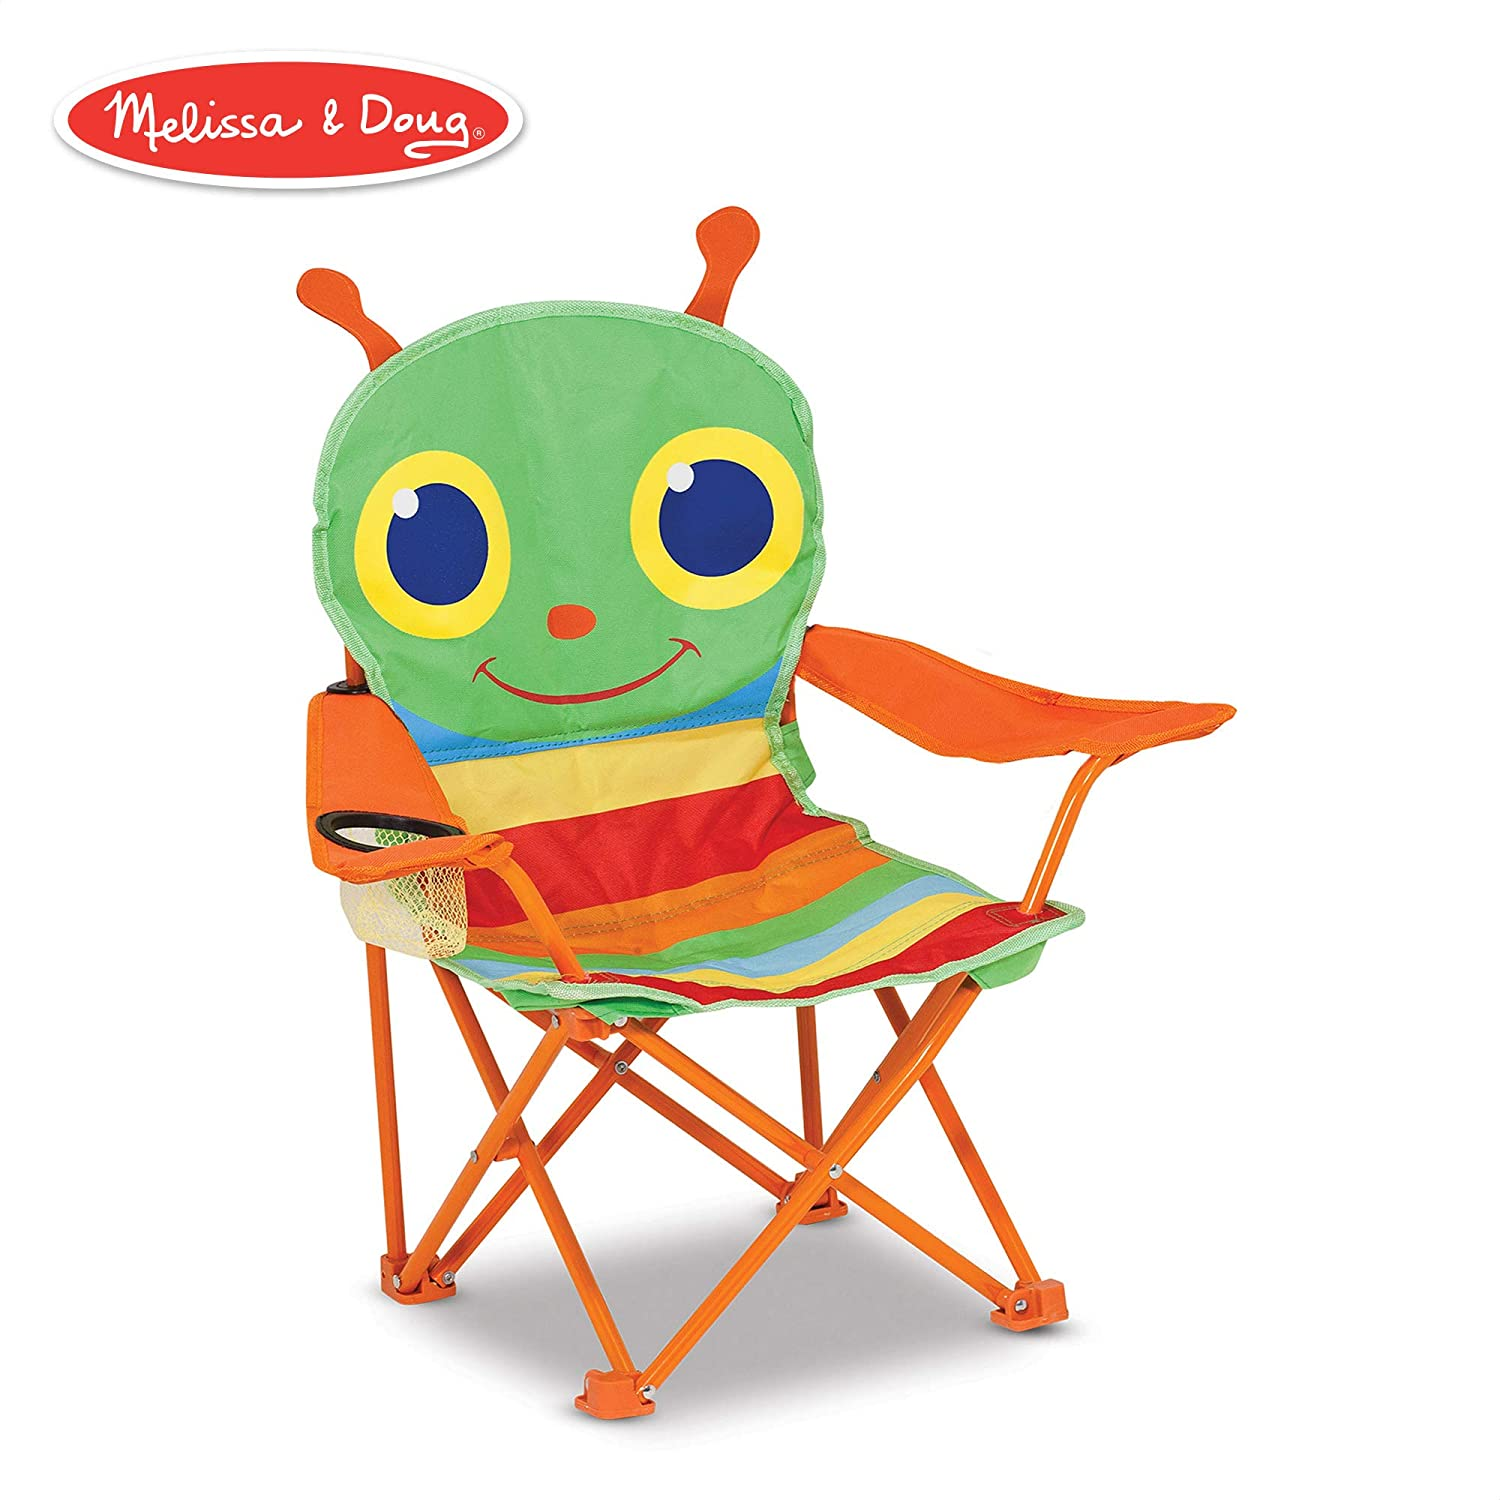 Melissa & Doug Sunny Patch Happy Giddy Child's Outdoor Chair